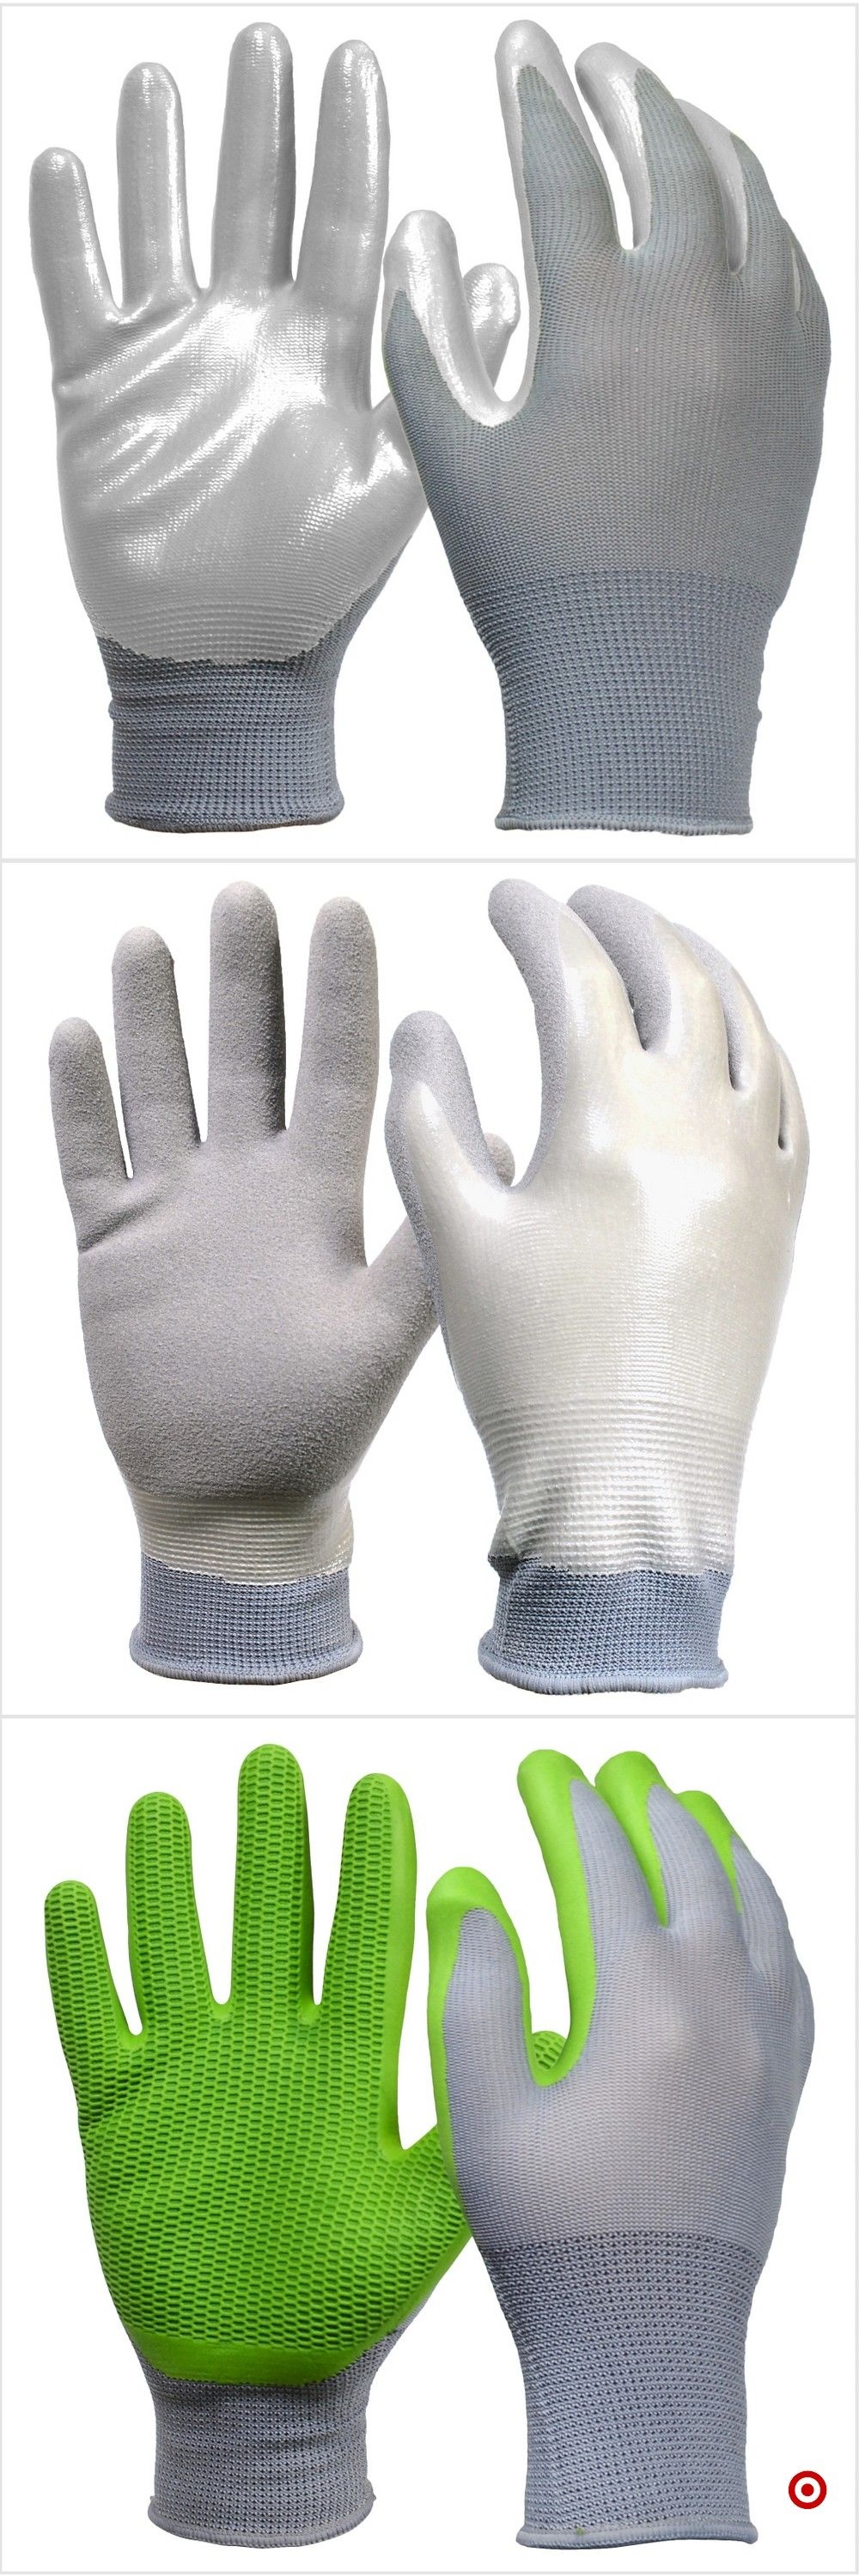 Shop Target For Gardening Gloves You Will Love At Great Low Prices. Free  Shipping On